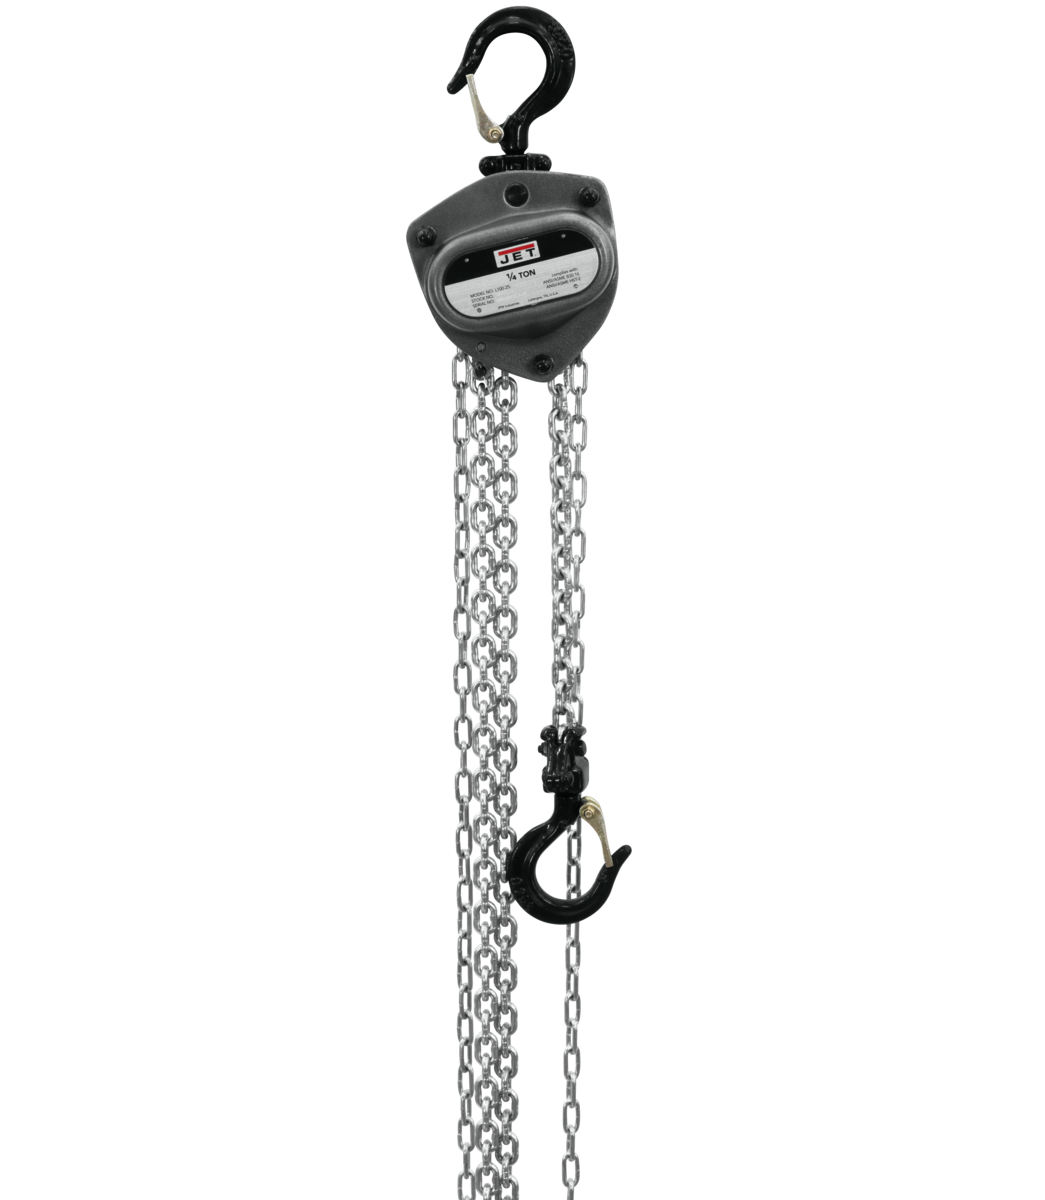 L-100-250WO-30, 1/4-Ton Hand Chain Hoist With 30' Lift & Overload Protection